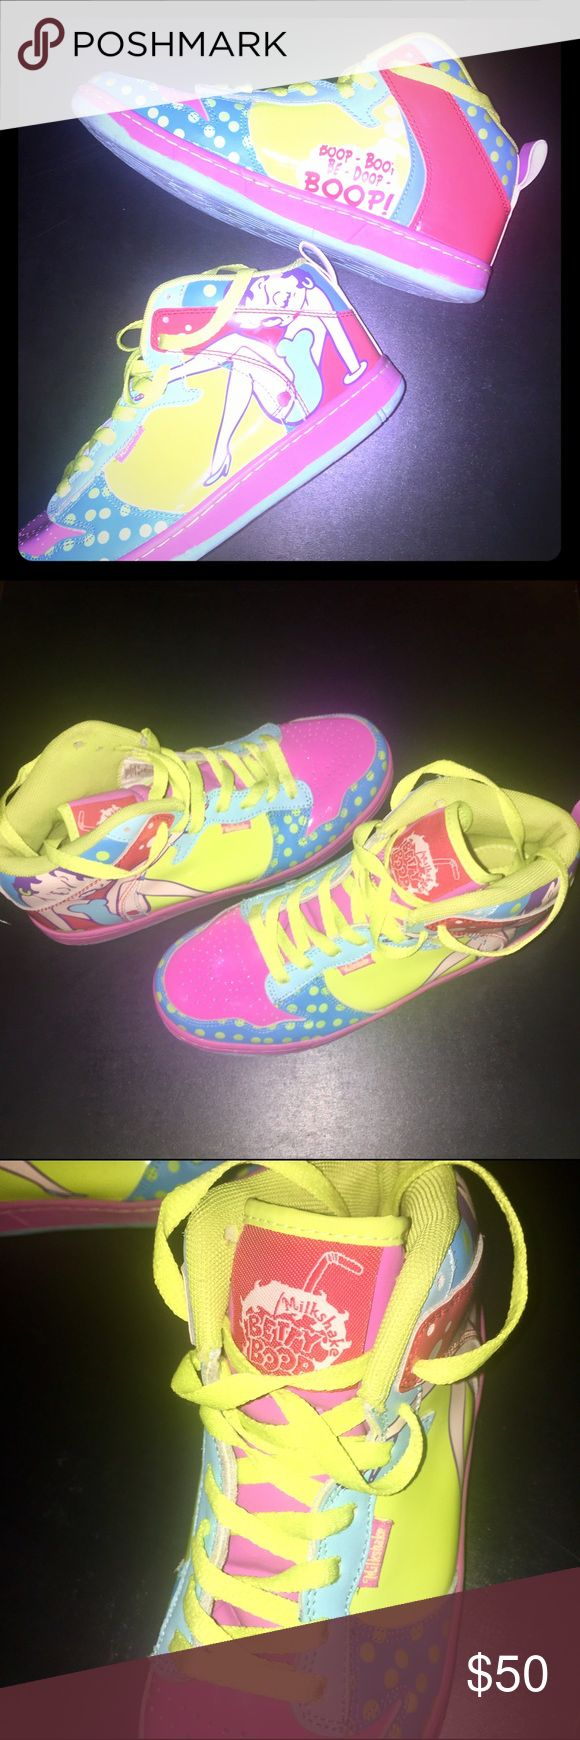 🎈SALE🎈Betty Boop Hightop Sneakers💋 🎈🎈SALE TODAY ONLY🎈🎈 *Price is good until 12pm PT*. Great Christmas Gift! Bright Neon Shades of pink, yellow, blue etc make up this totally unique throwback sneaker! Lace up high tops. Like New! Sz 7. Betty Boop Shoes Sneakers